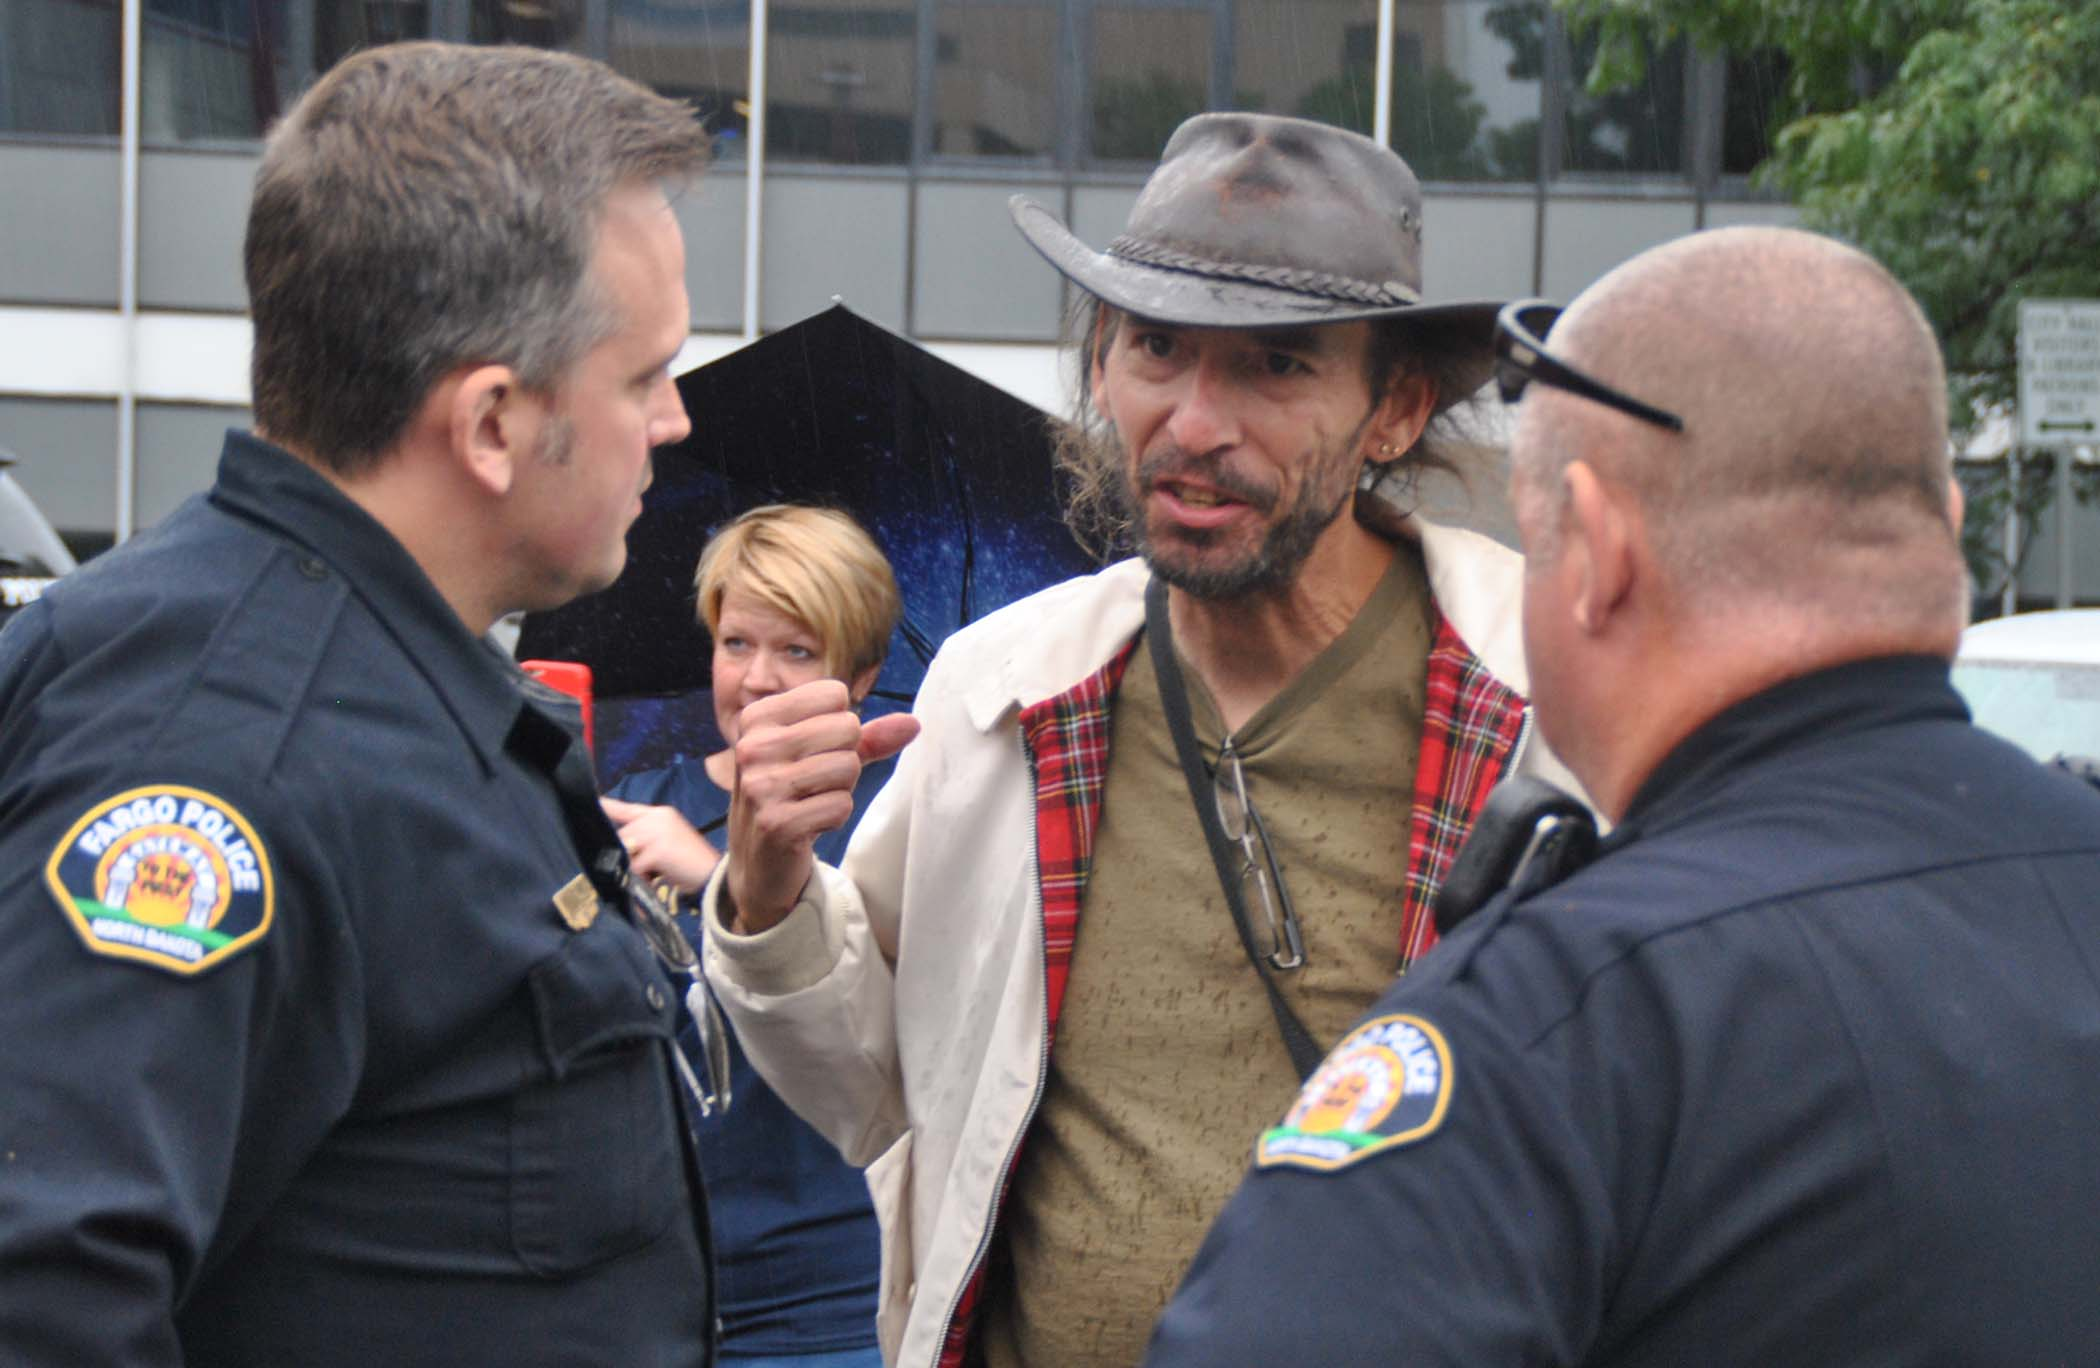 Kevin Benko talking to police - photo by C.S. Hagen